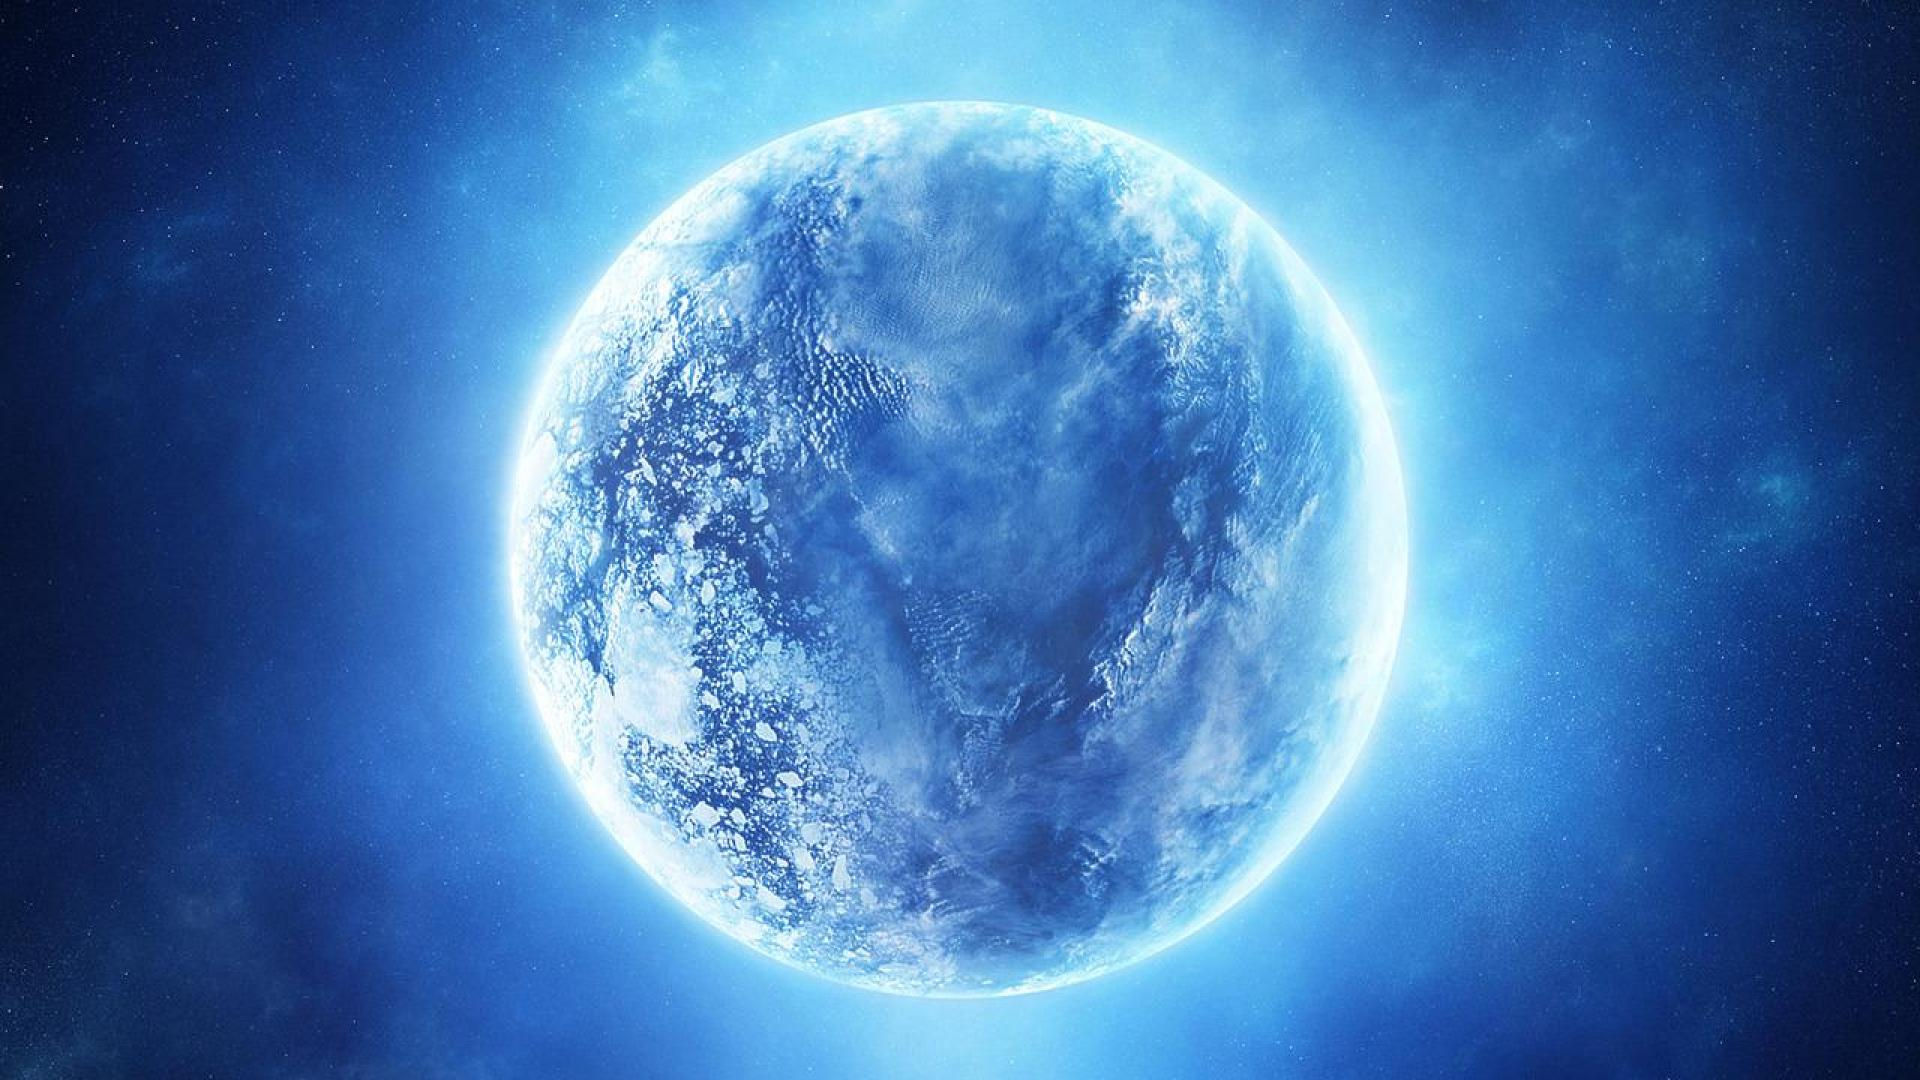 Blue Moon Backgrounds Posted By Sarah Walker